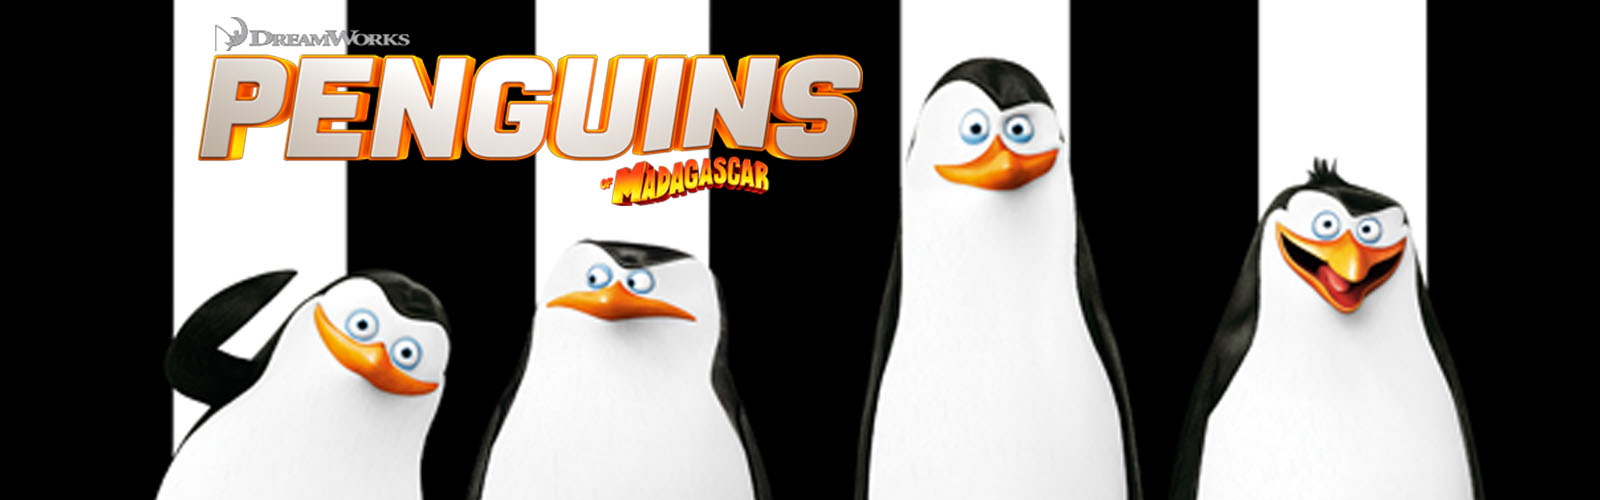 penguins of madagascar - the national schools partnership